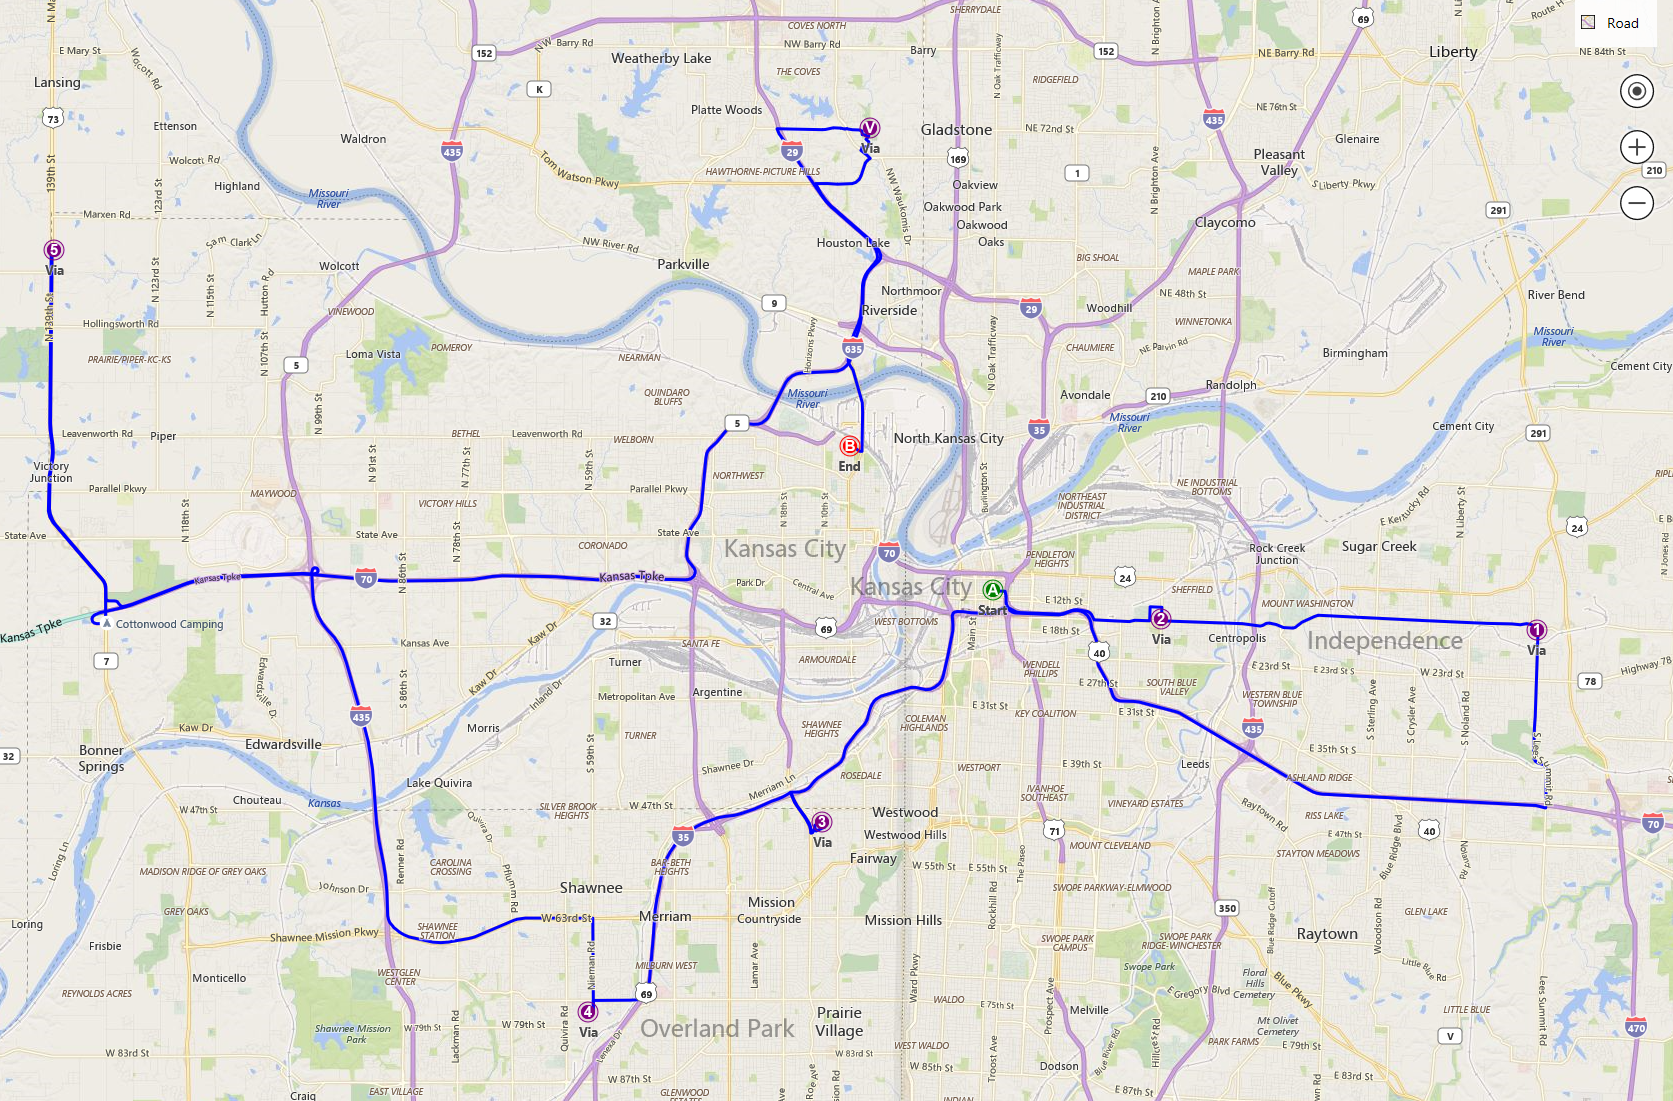 Bing Maps Route Optimization